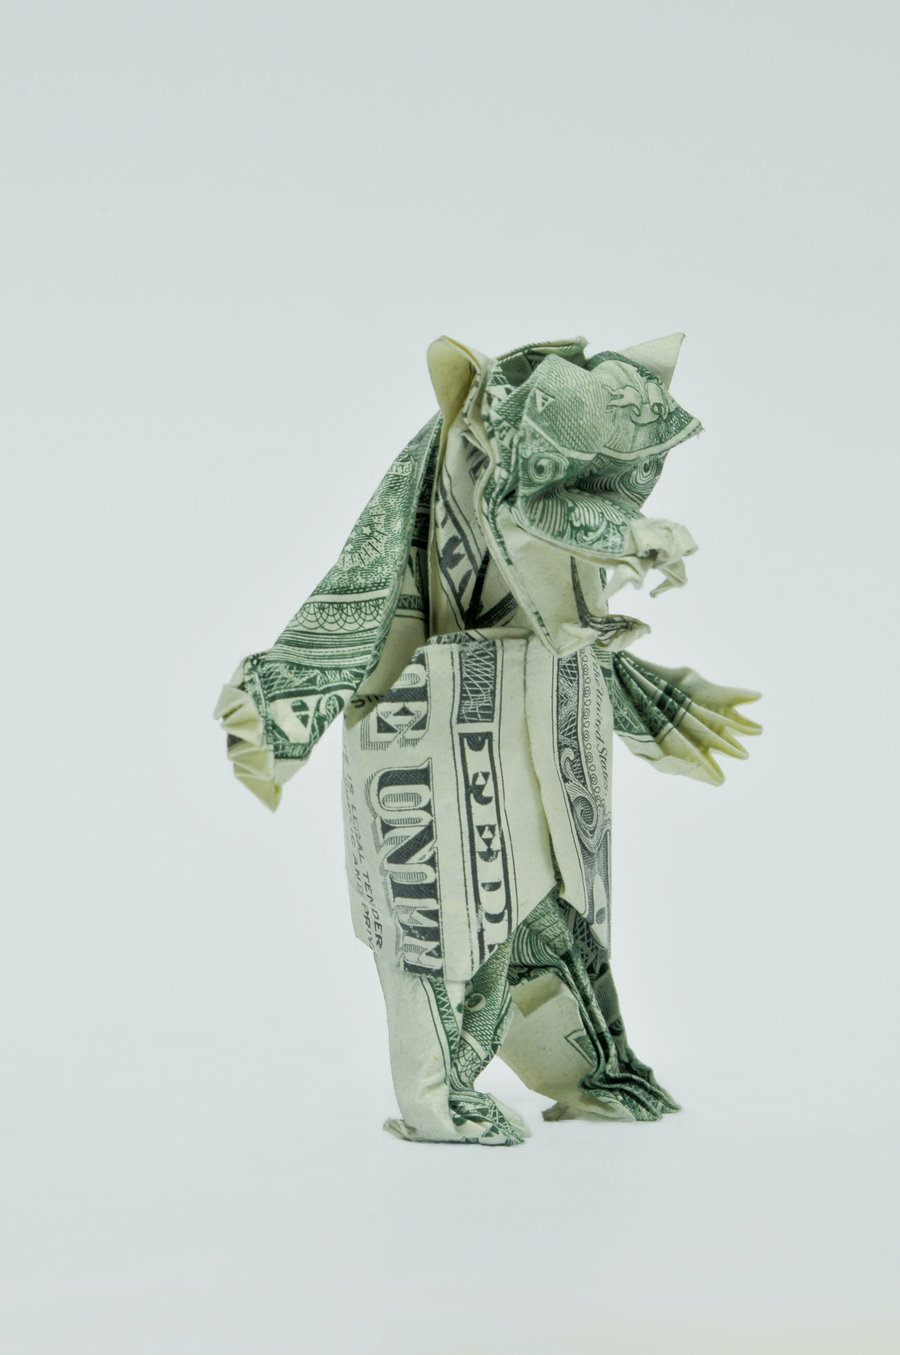 Dollar Origami Koi Fish Great Gift Idea Animal Made From Real Mon ... | 1355x900